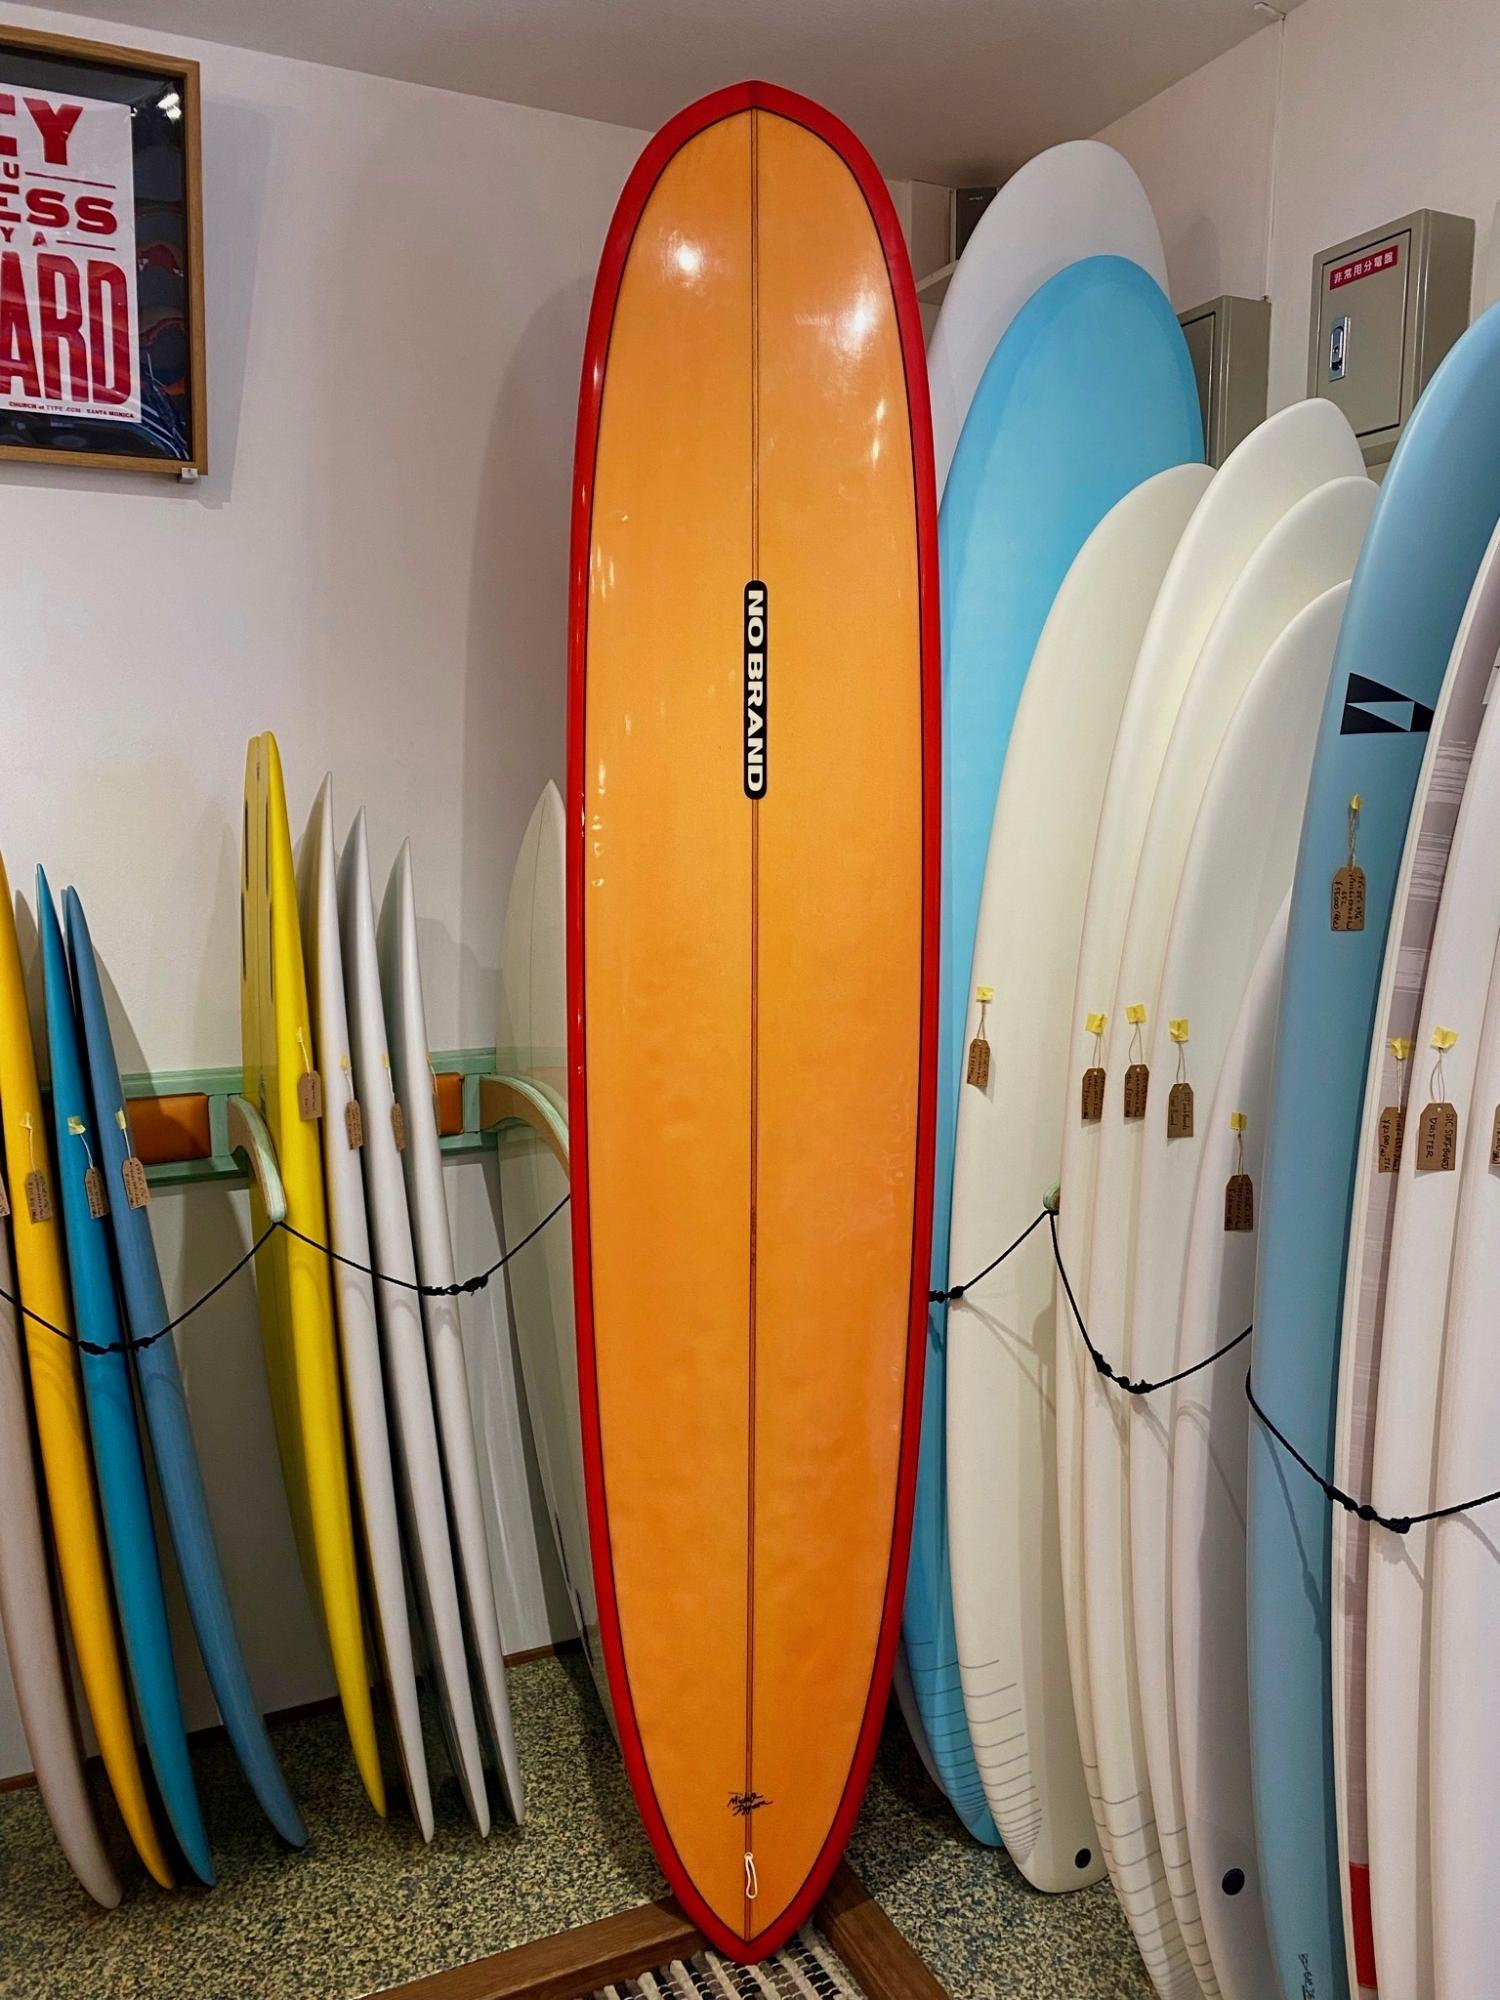 USED BOARDS (BIC SURF BOARDS 9.4 Longboard Nose Rider)